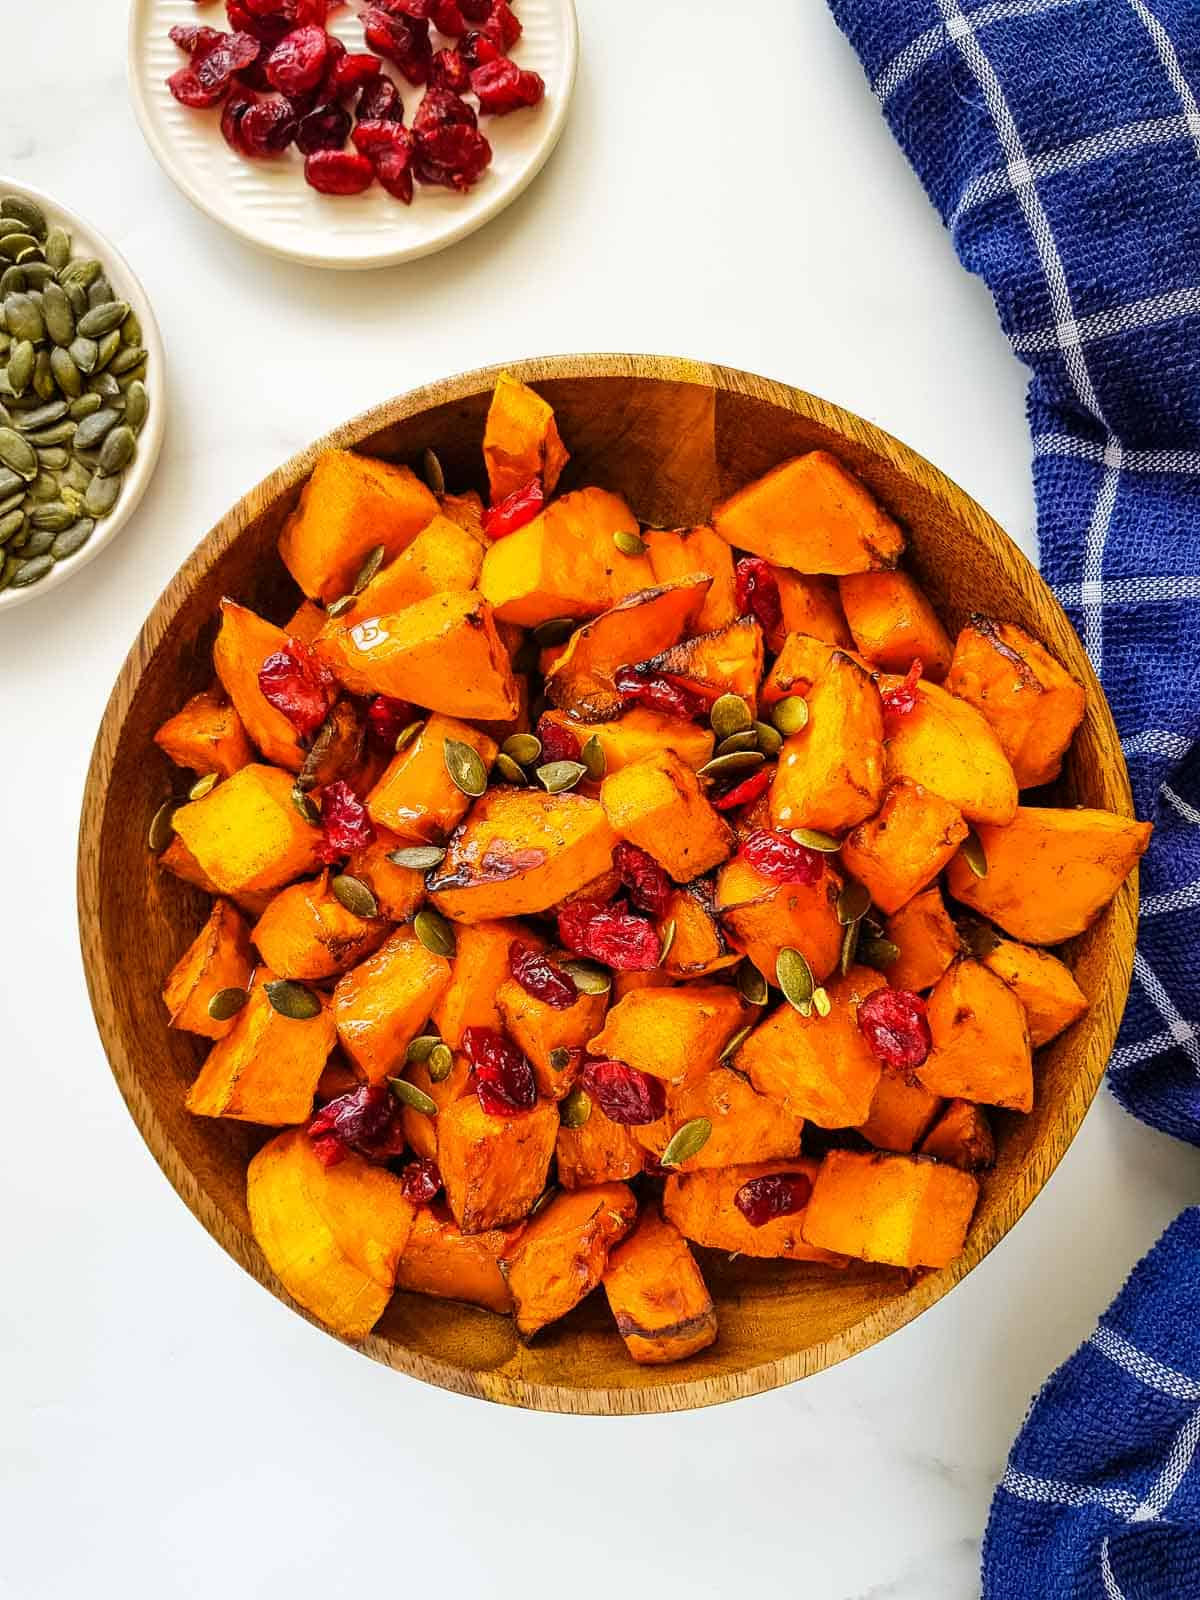 Air fryer butternut squash with pumpkin seeds and cranberries.